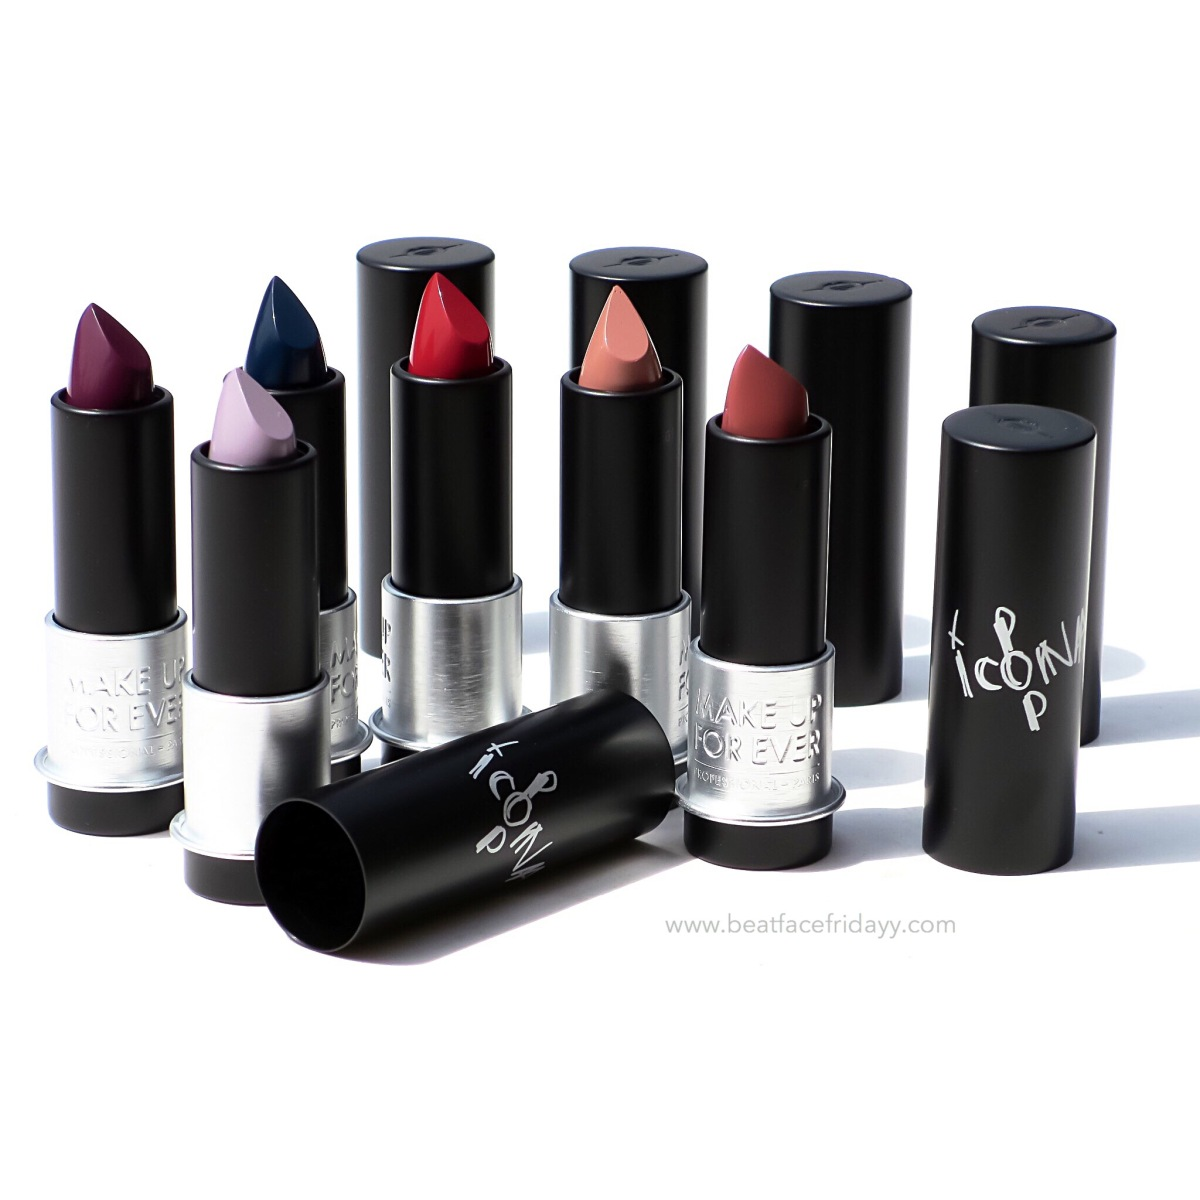 MAKE UP FOR EVER Artist Rouge Lipsticks C105, C211, C502, C506, C603, M401 Swatch